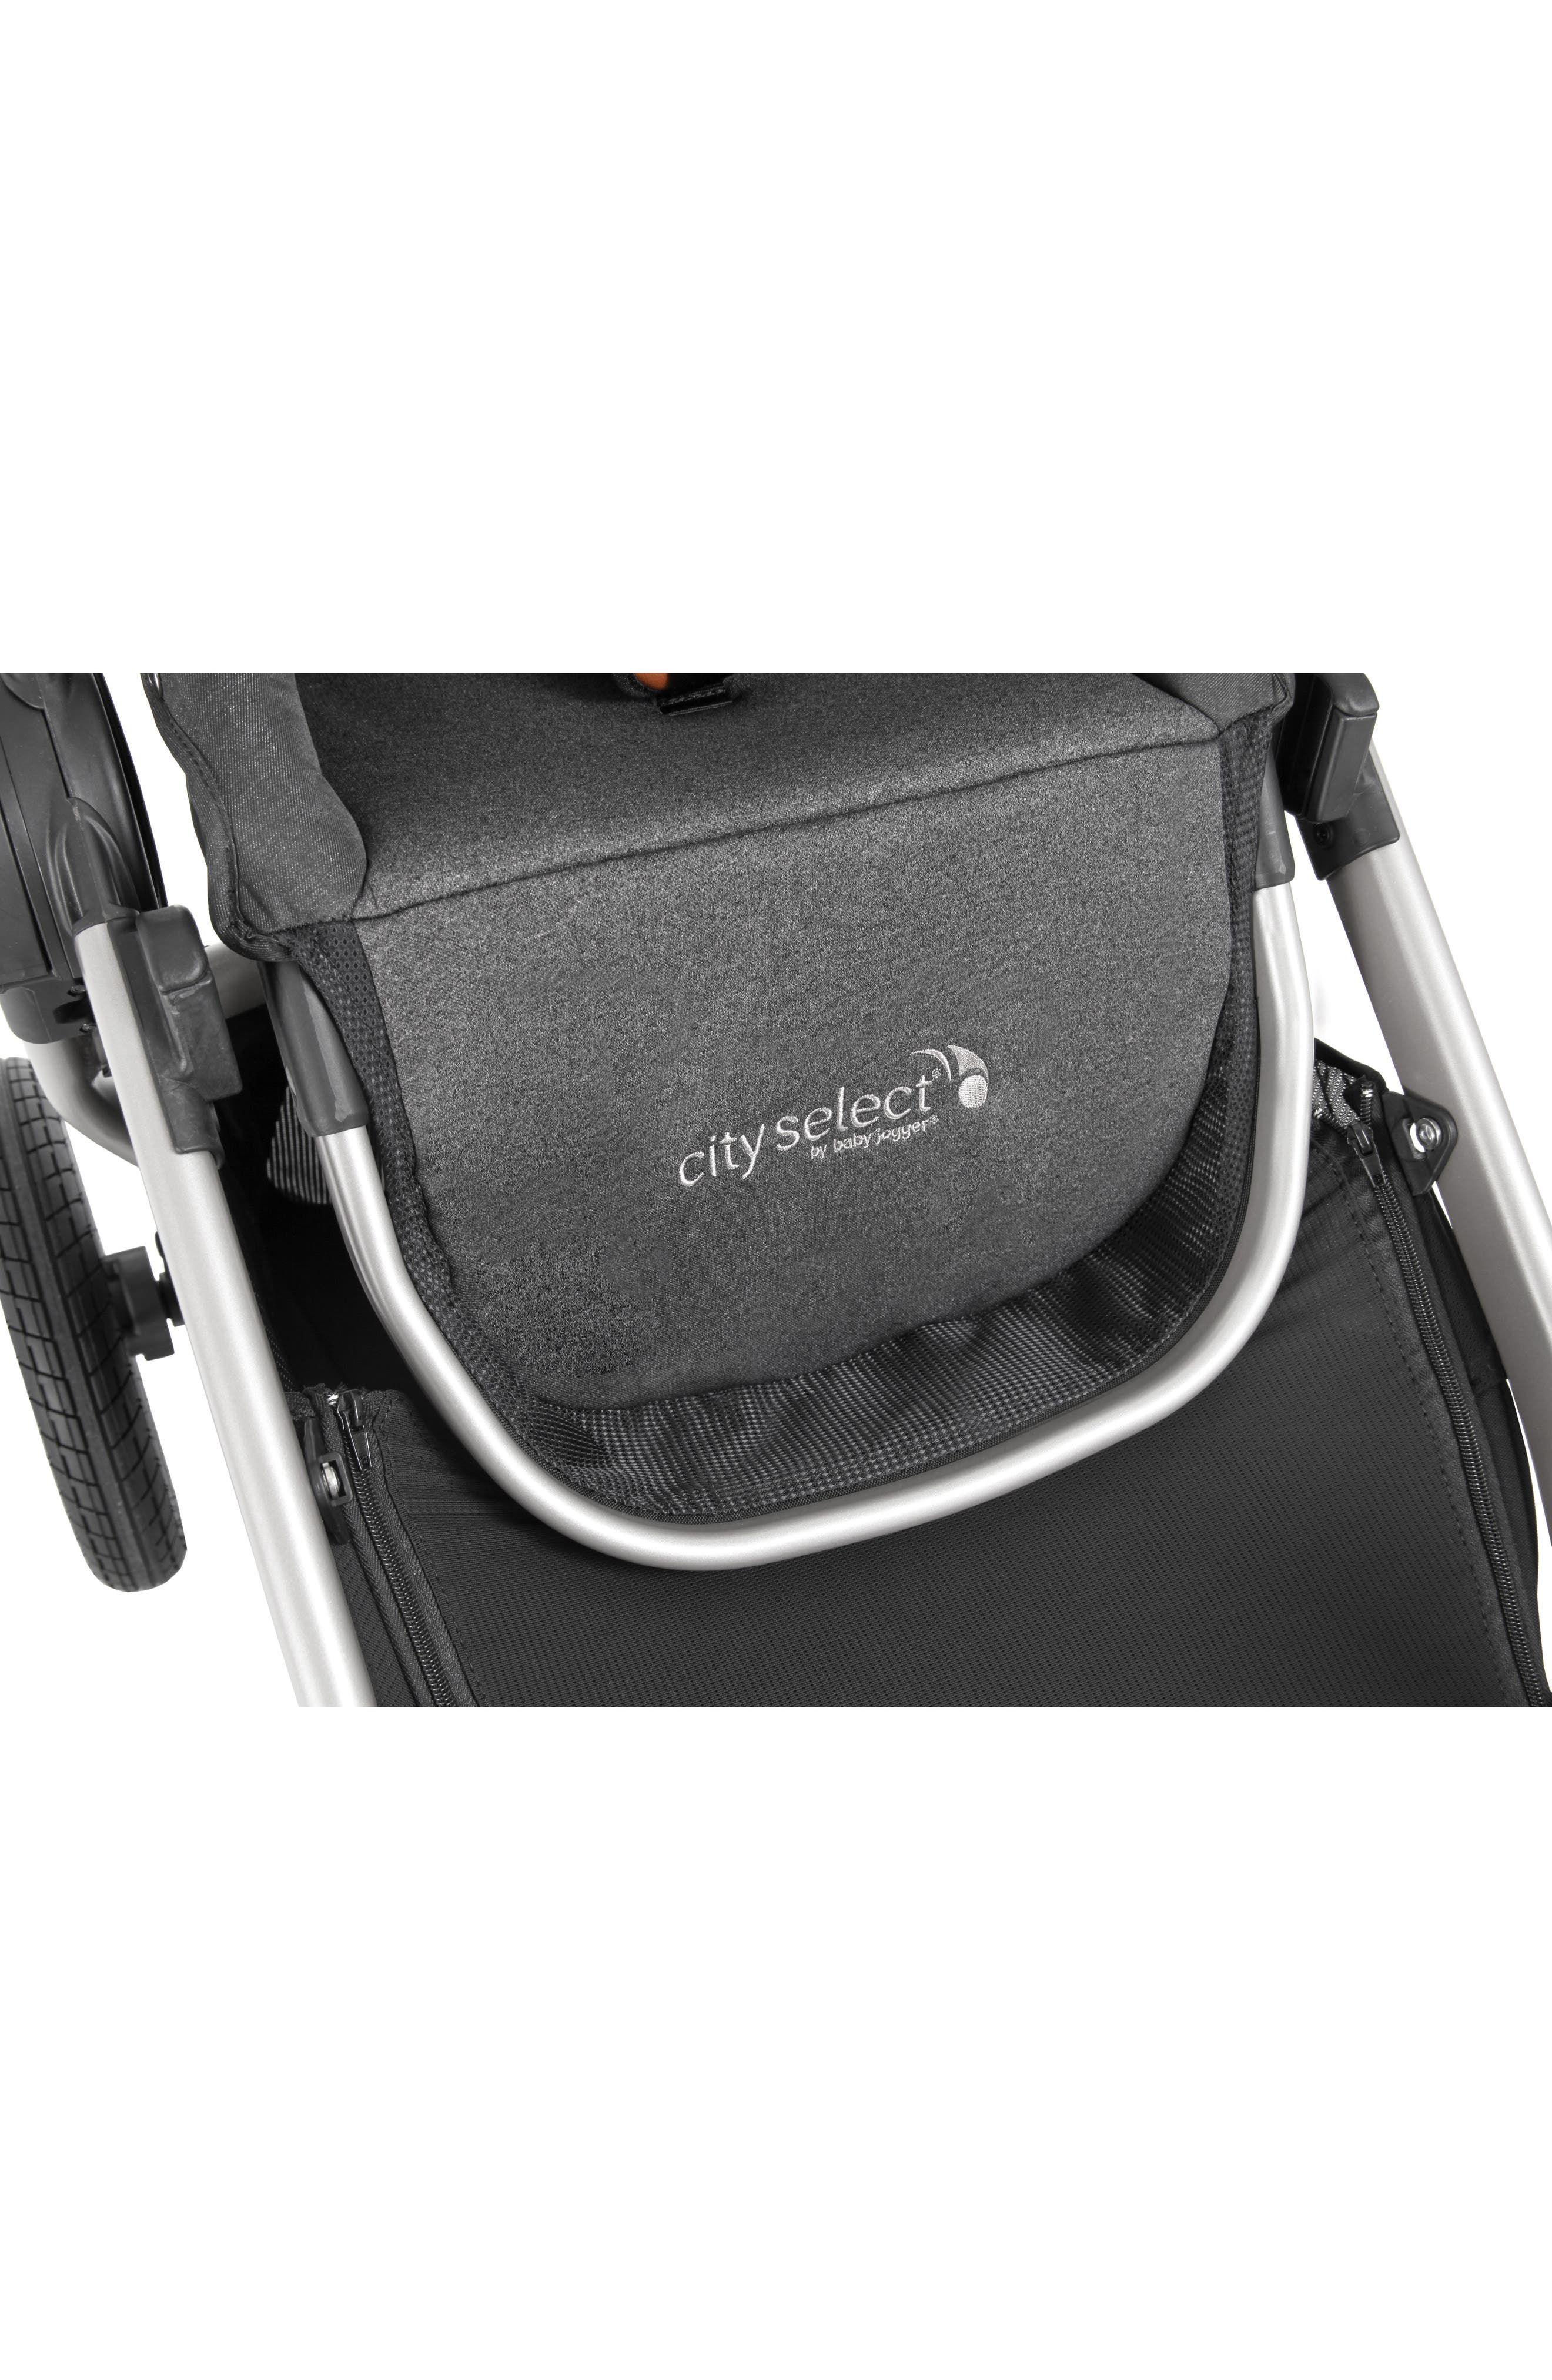 City Select<sup>®</sup> 2018 Special Edition 10-Year Anniversary Stroller,                             Alternate thumbnail 10, color,                             Grey